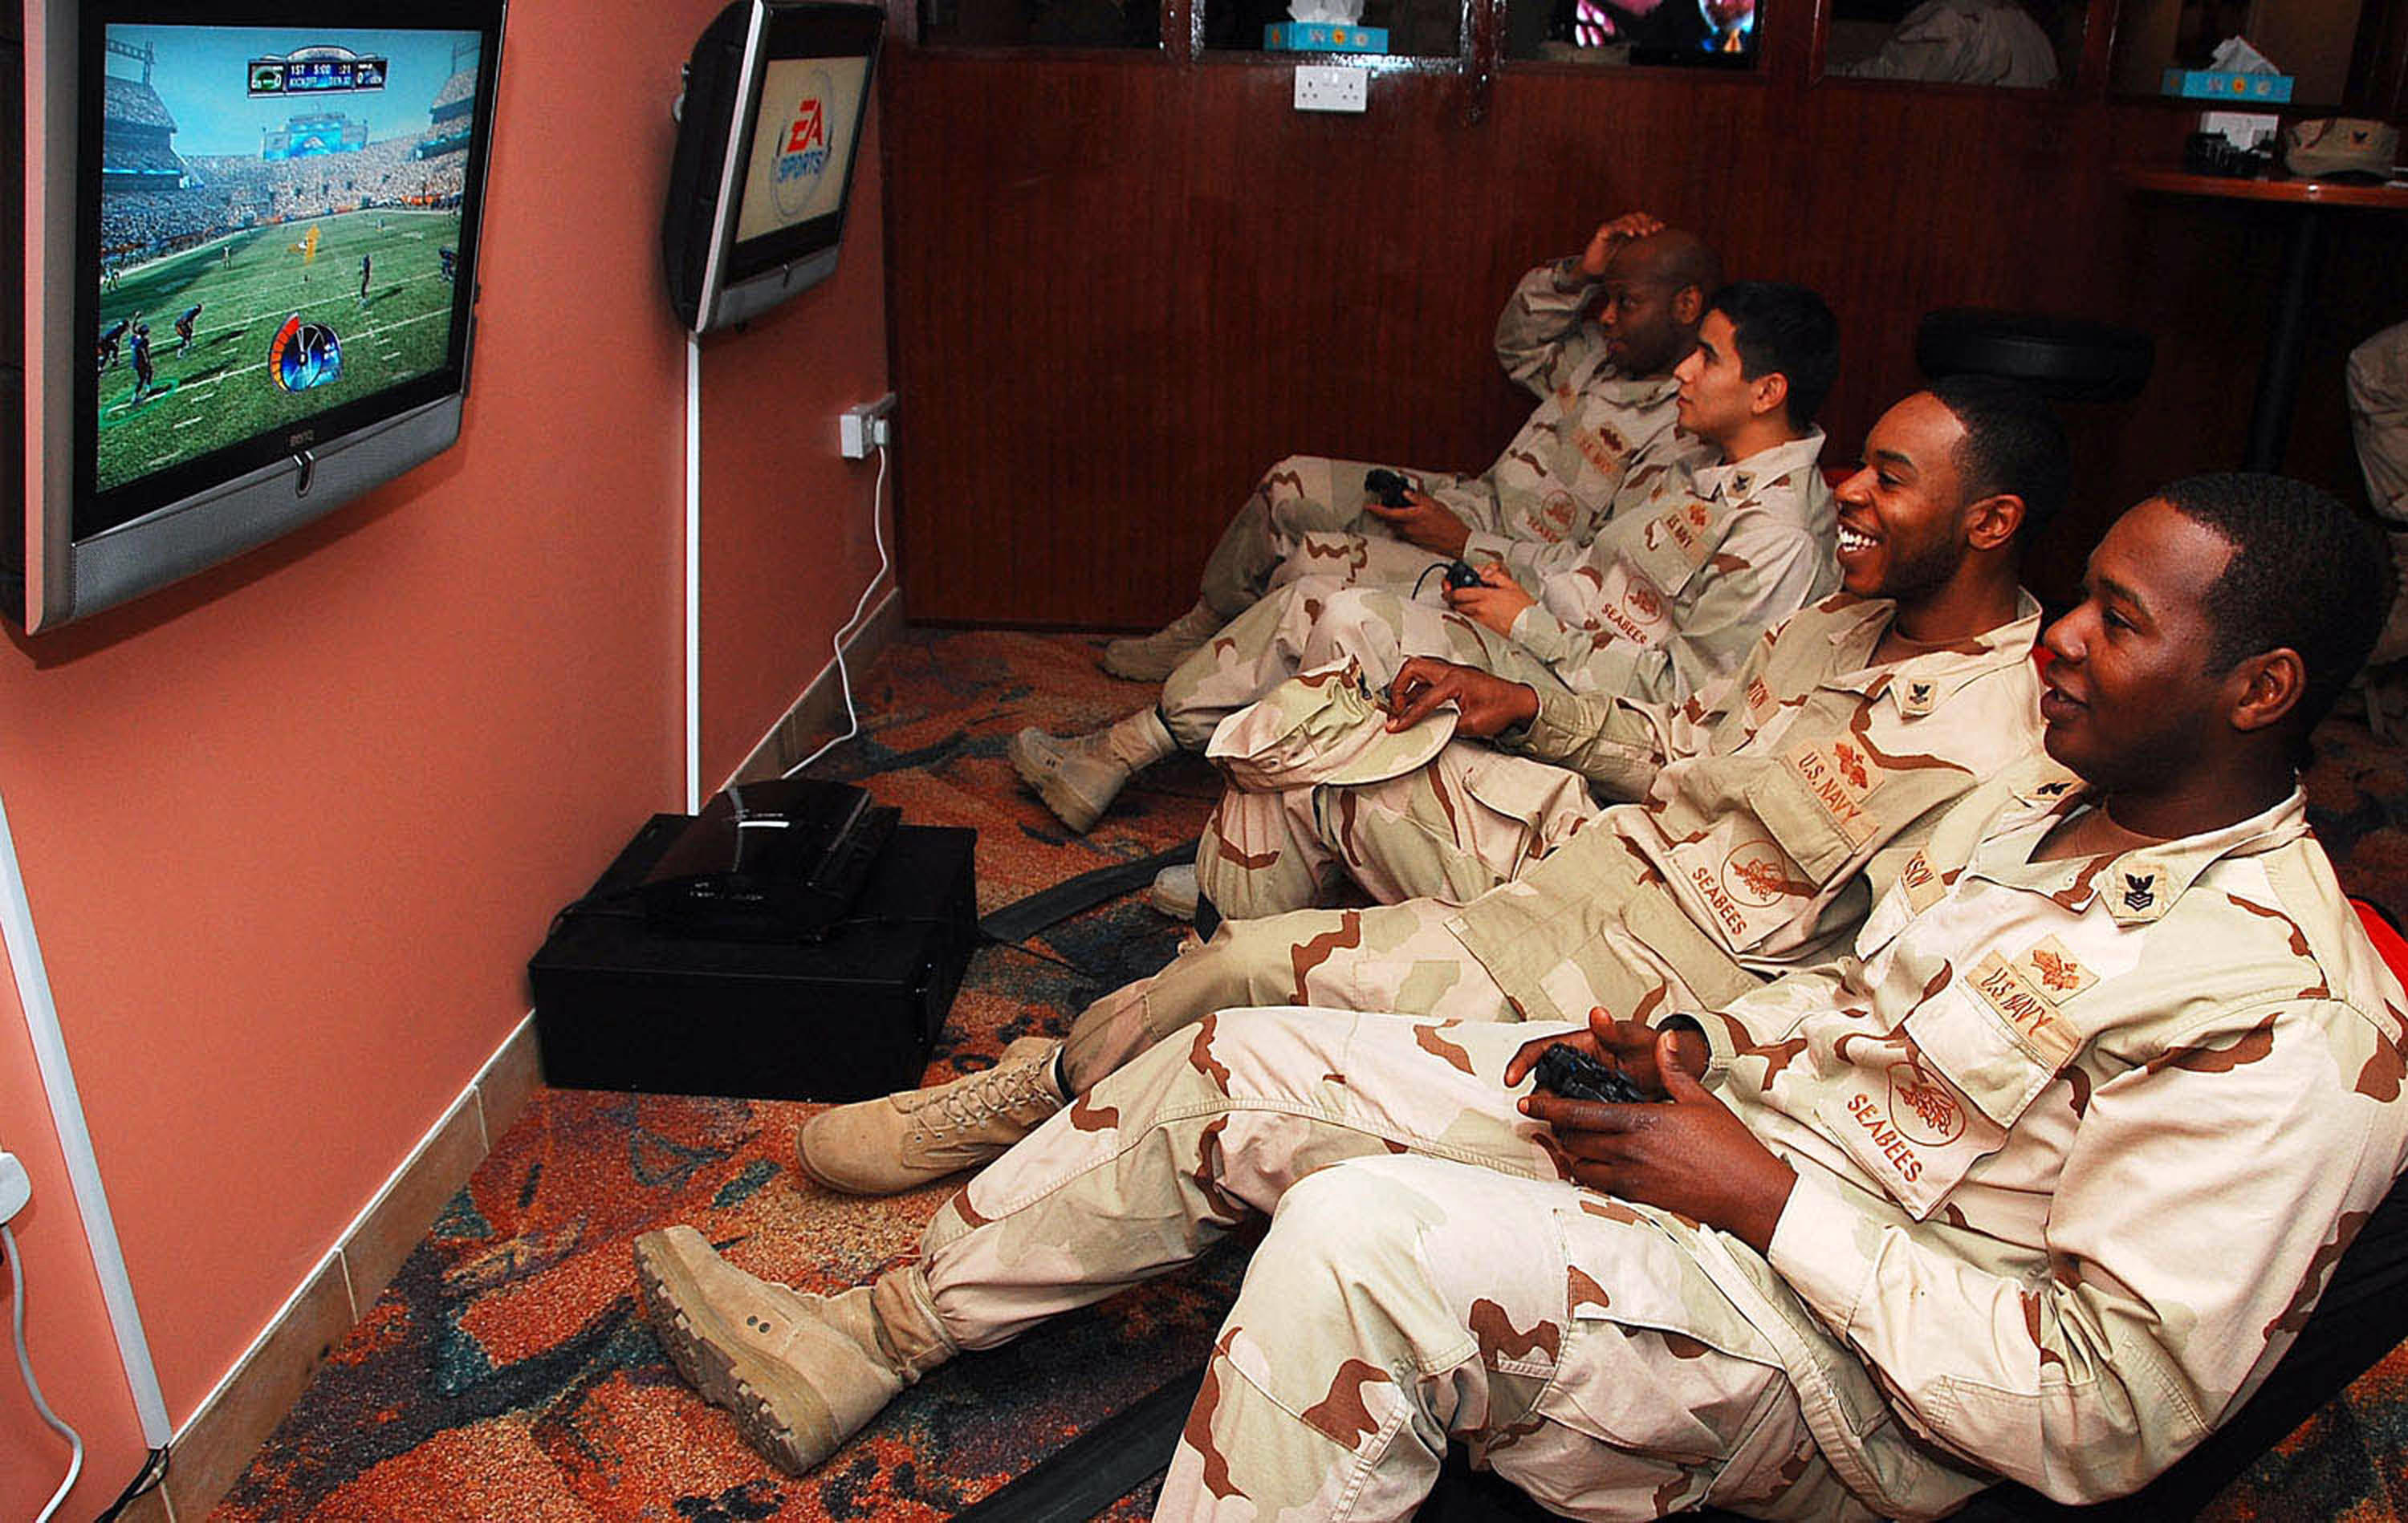 File:US Navy 090205-N-7862M-002 Sailors play video games ...